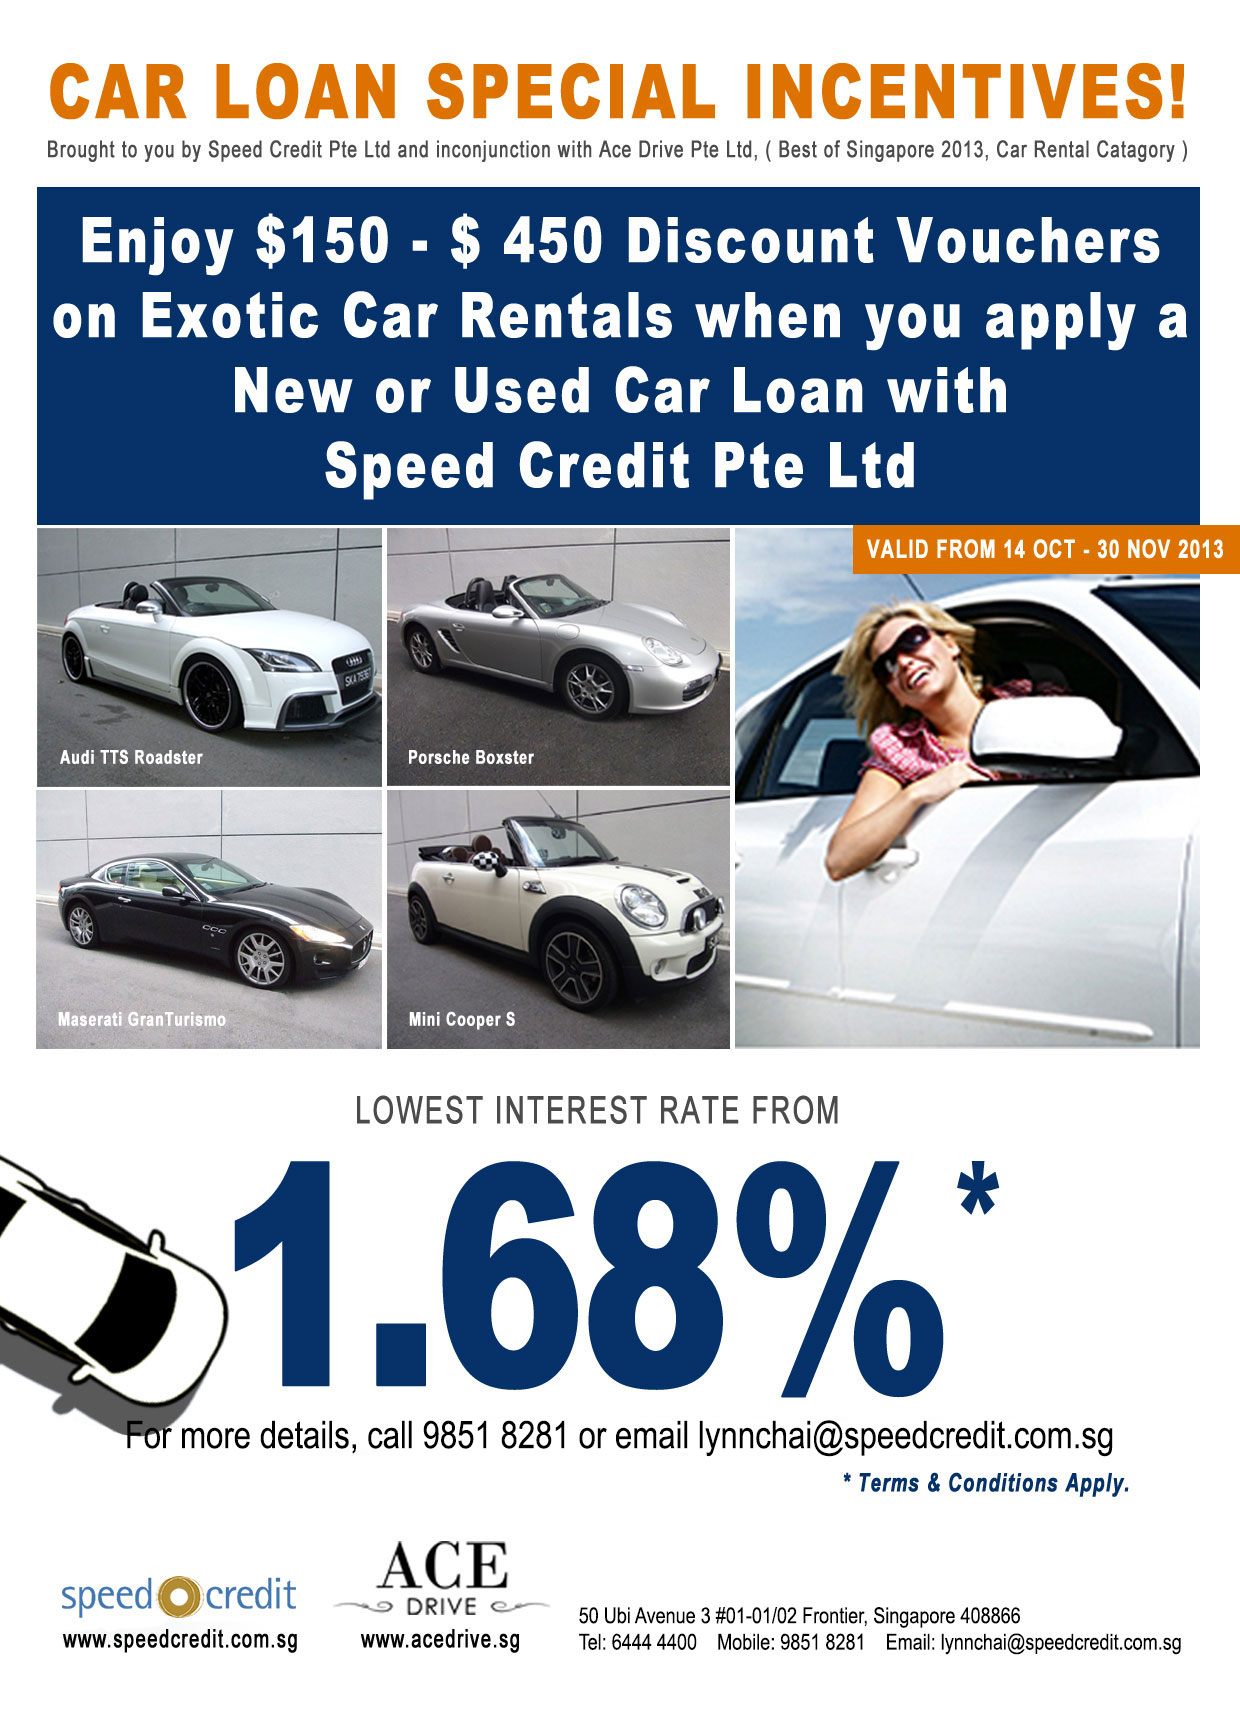 new average used car loan interest rate used cars. Black Bedroom Furniture Sets. Home Design Ideas